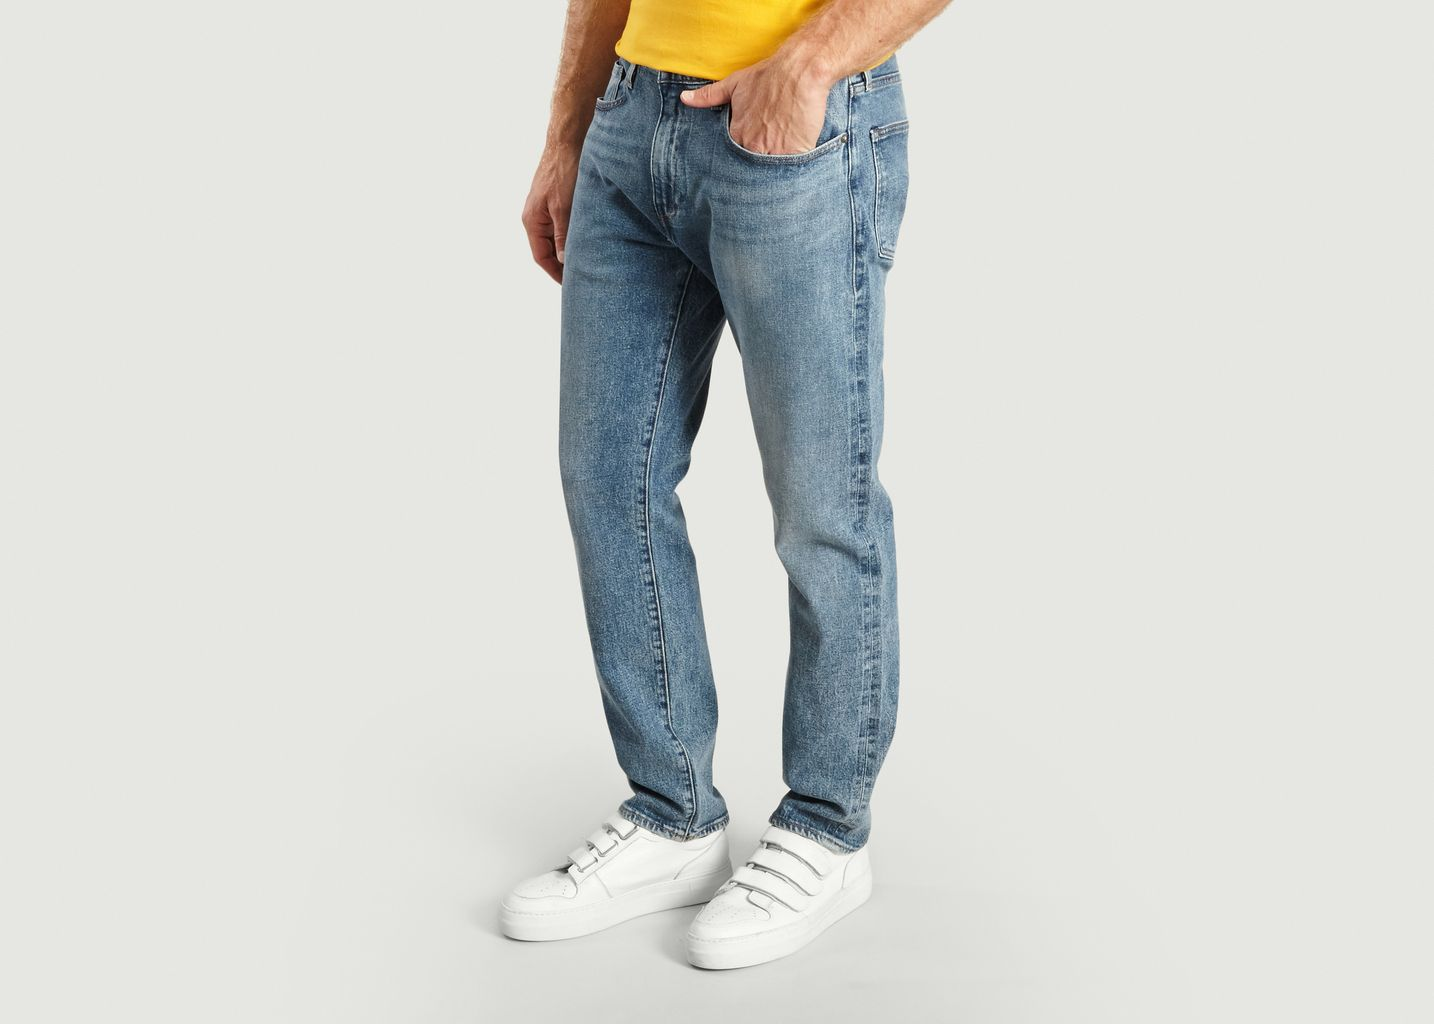 Jean 502 Selvedge Toile Refibra - Levi's Made and Crafted